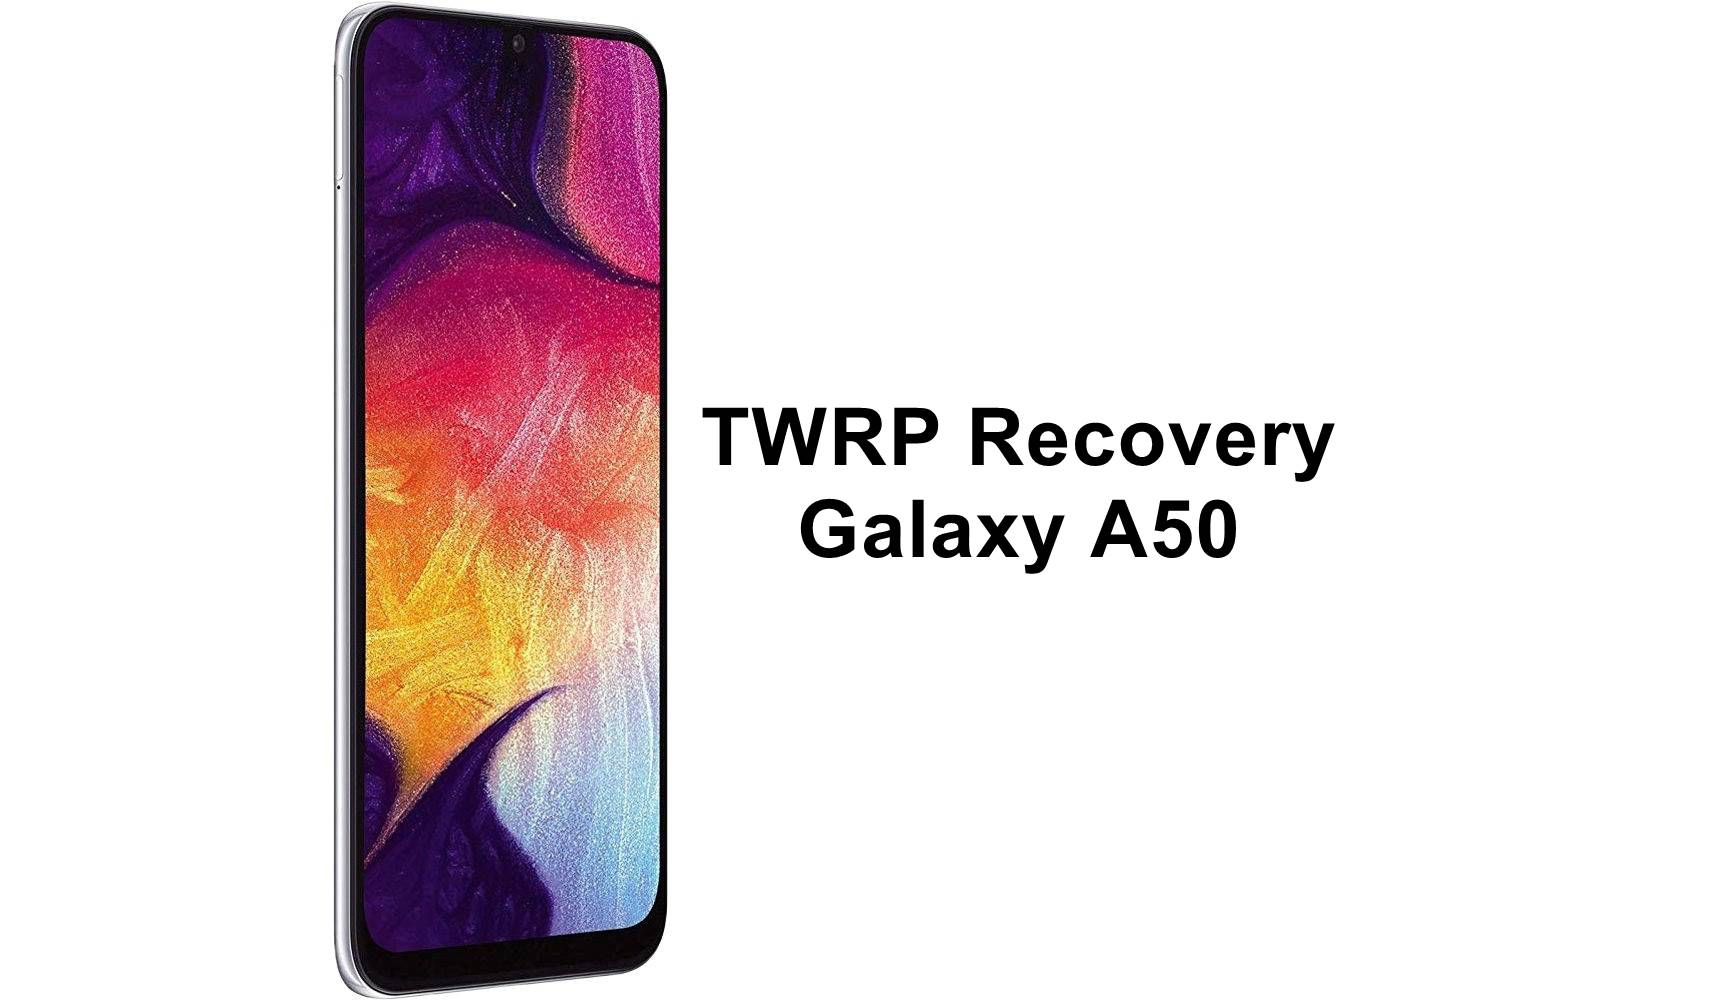 TWRP Recovery Galaxy A50